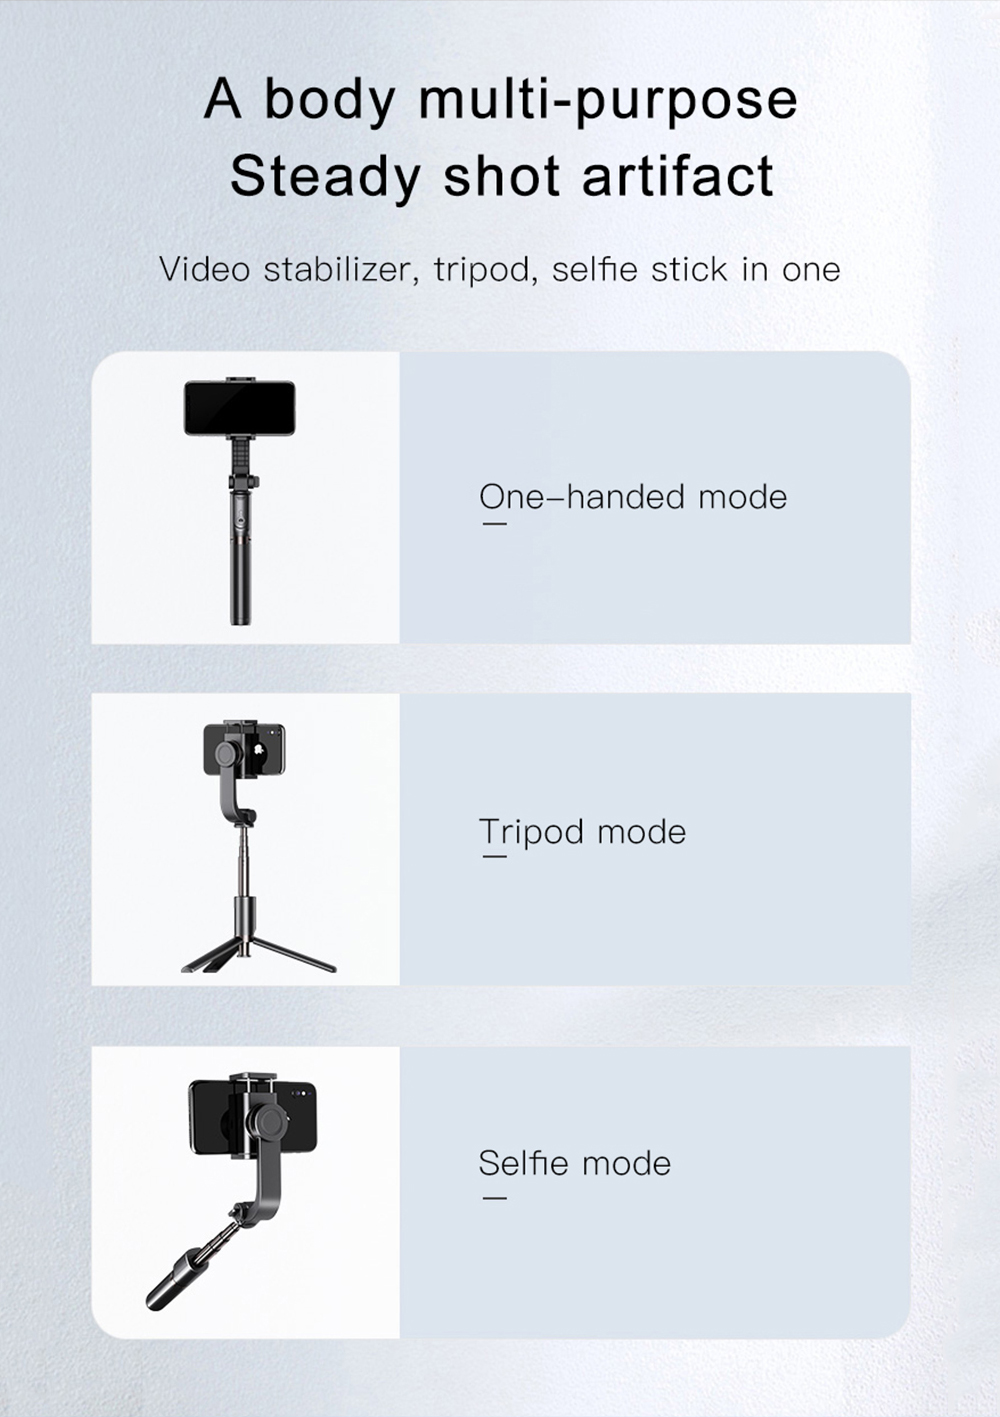 Bonola 3 in1 Handheld Gimbal Stabilizer Smartphone Selfie Stick Tripod For iOSAndroid Video Stabilizer For iPhone11ProSamsung (2)